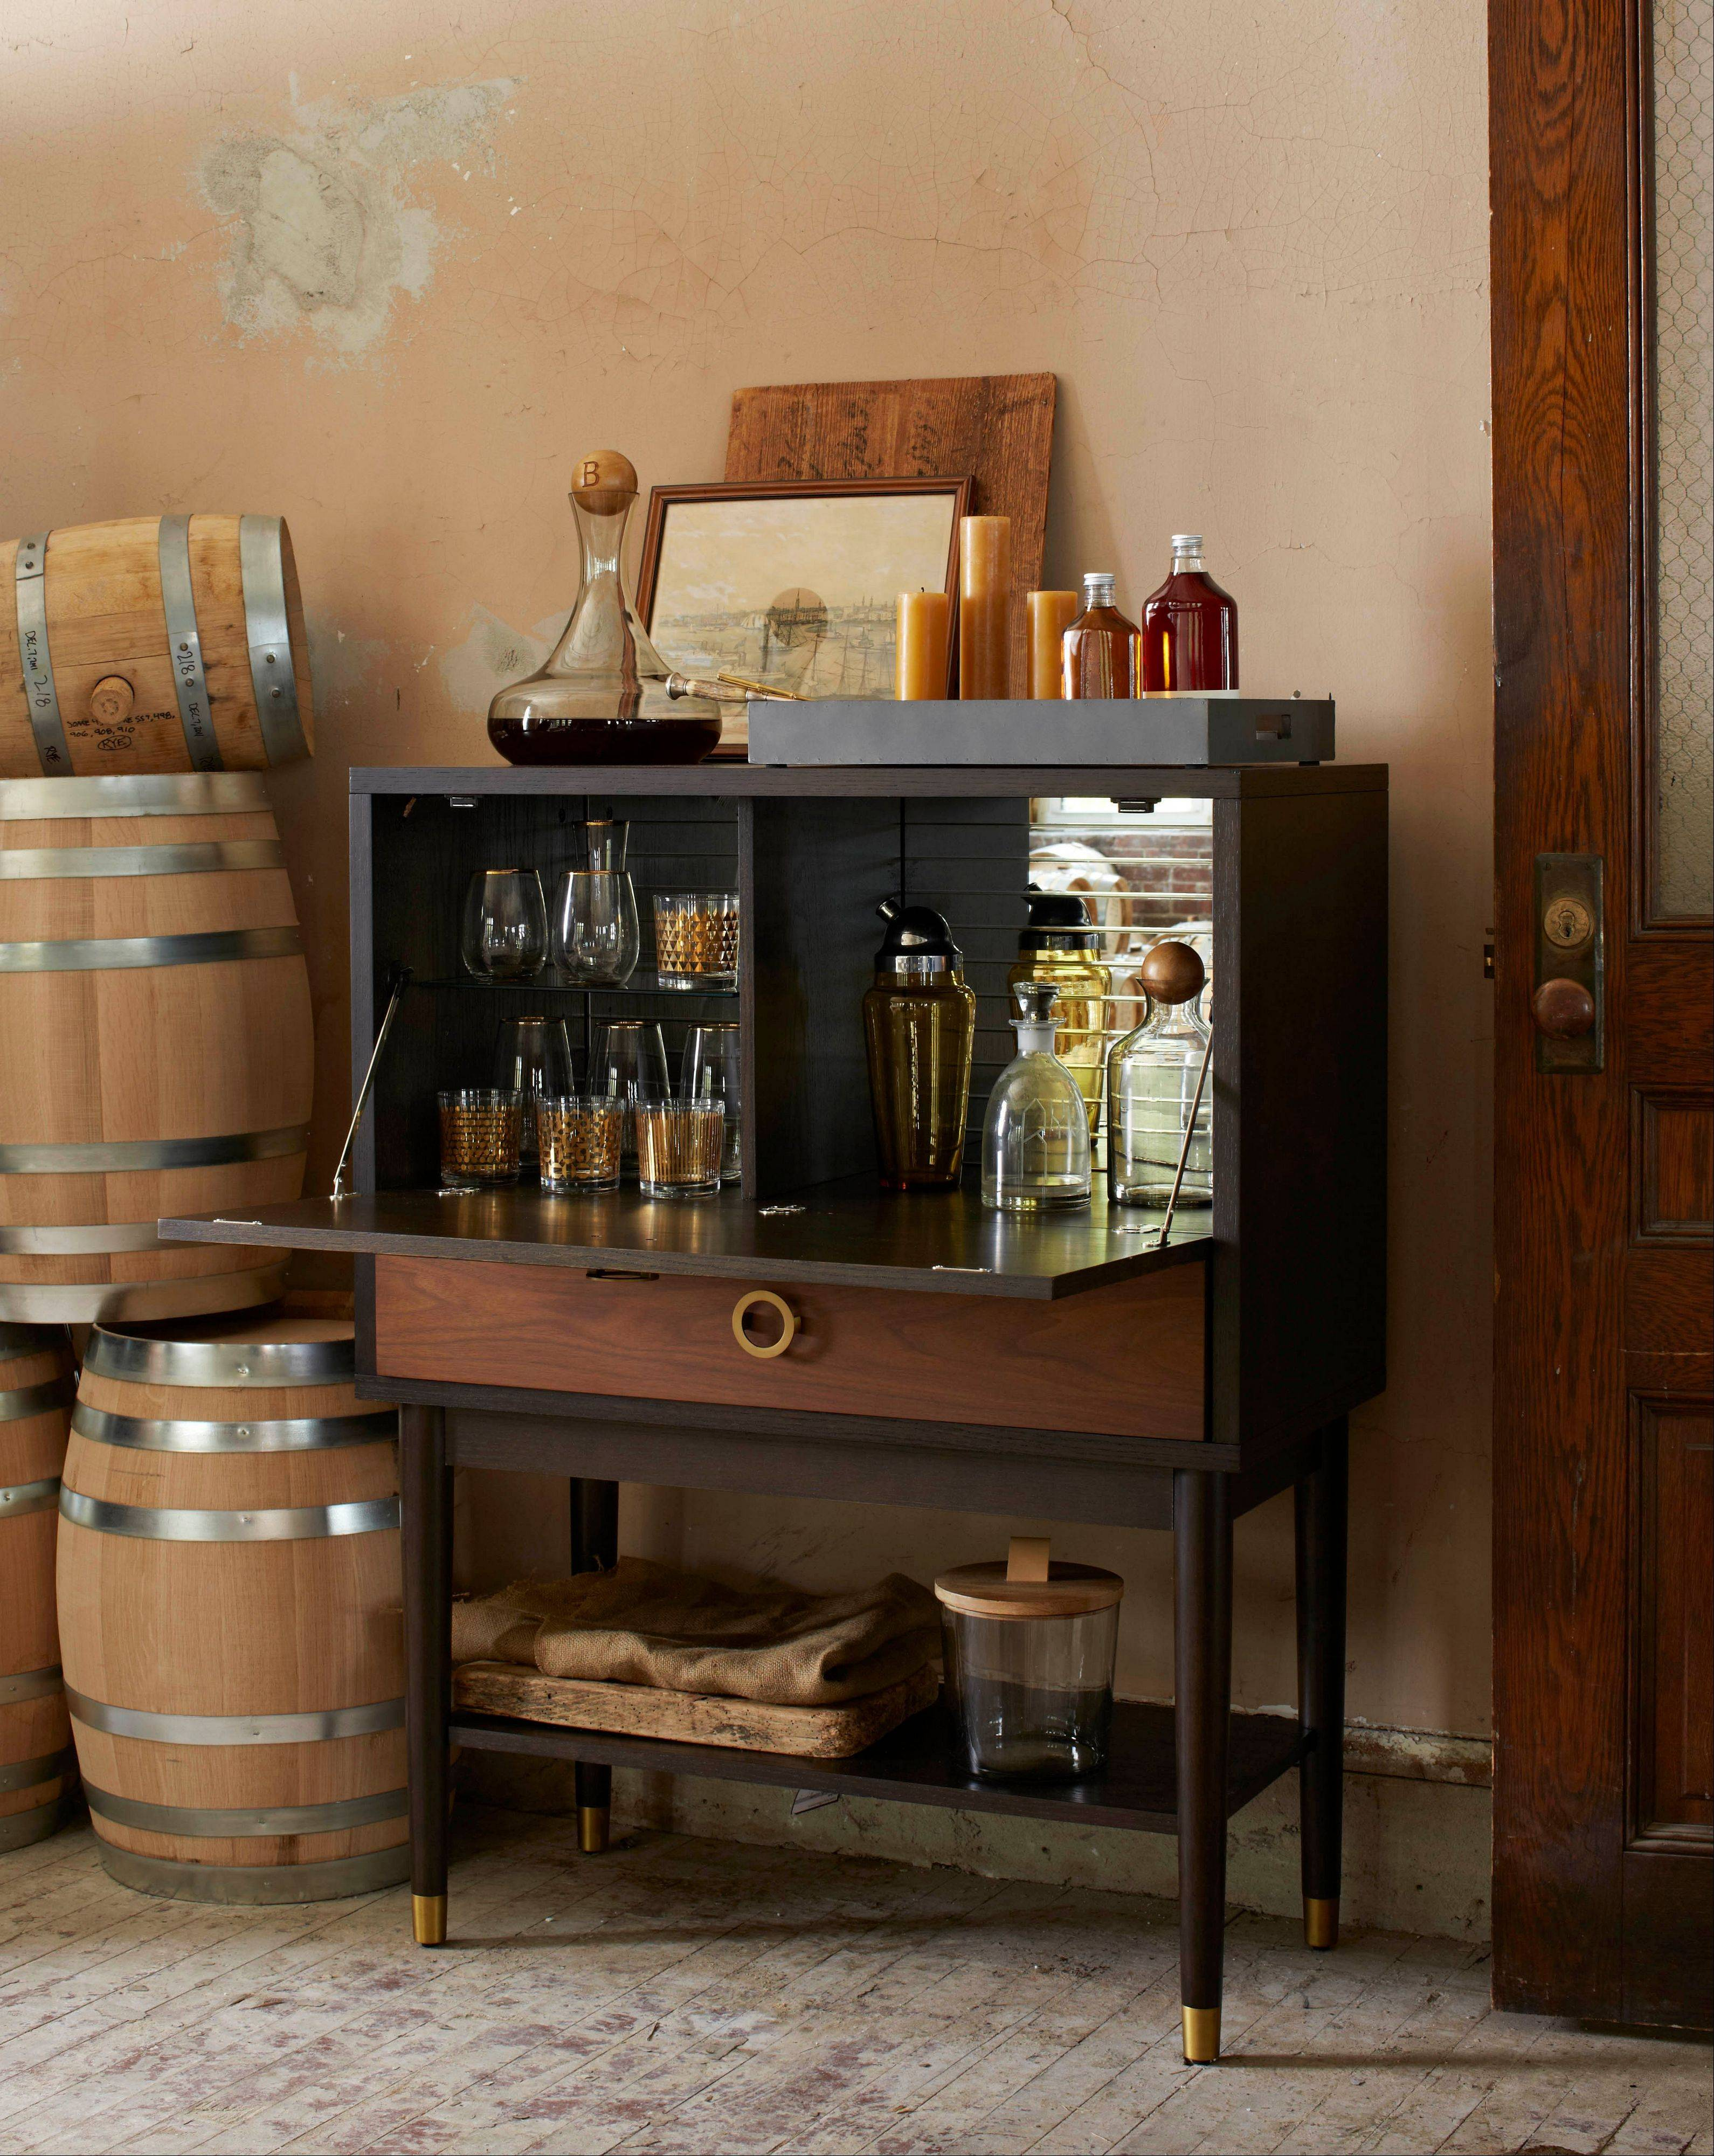 The Dodson bar has flip-down shelves and lots of storage. Bar carts are a great way to set up a bar in a small space.